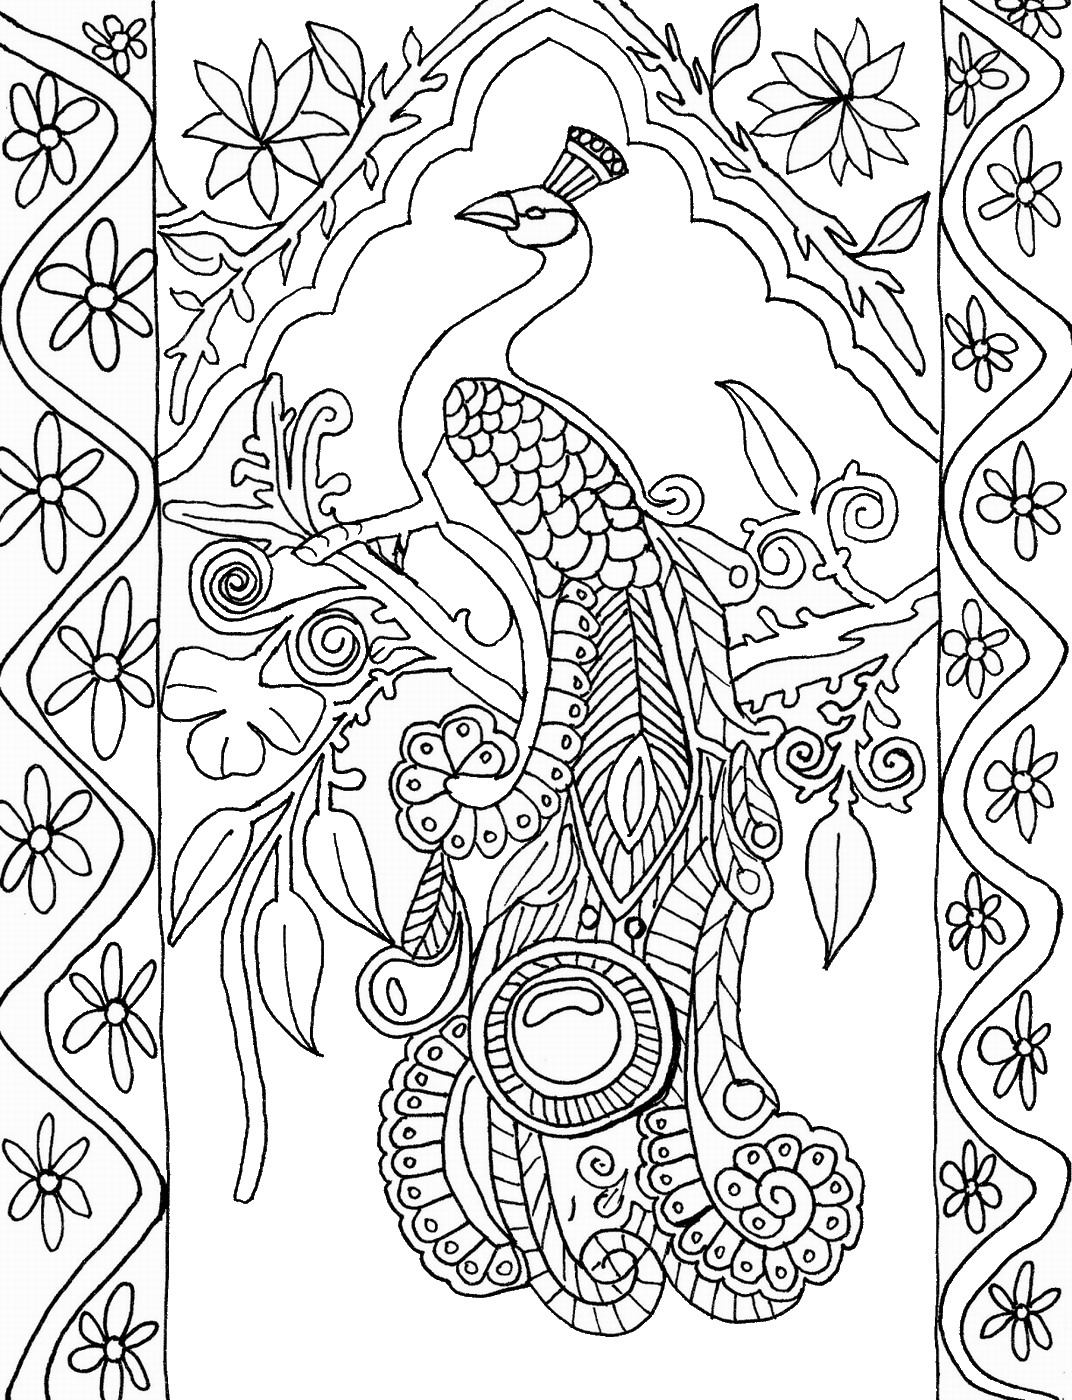 picture of peacock to color a cartoon imagery of peacock coloring page kids play color to picture color of peacock